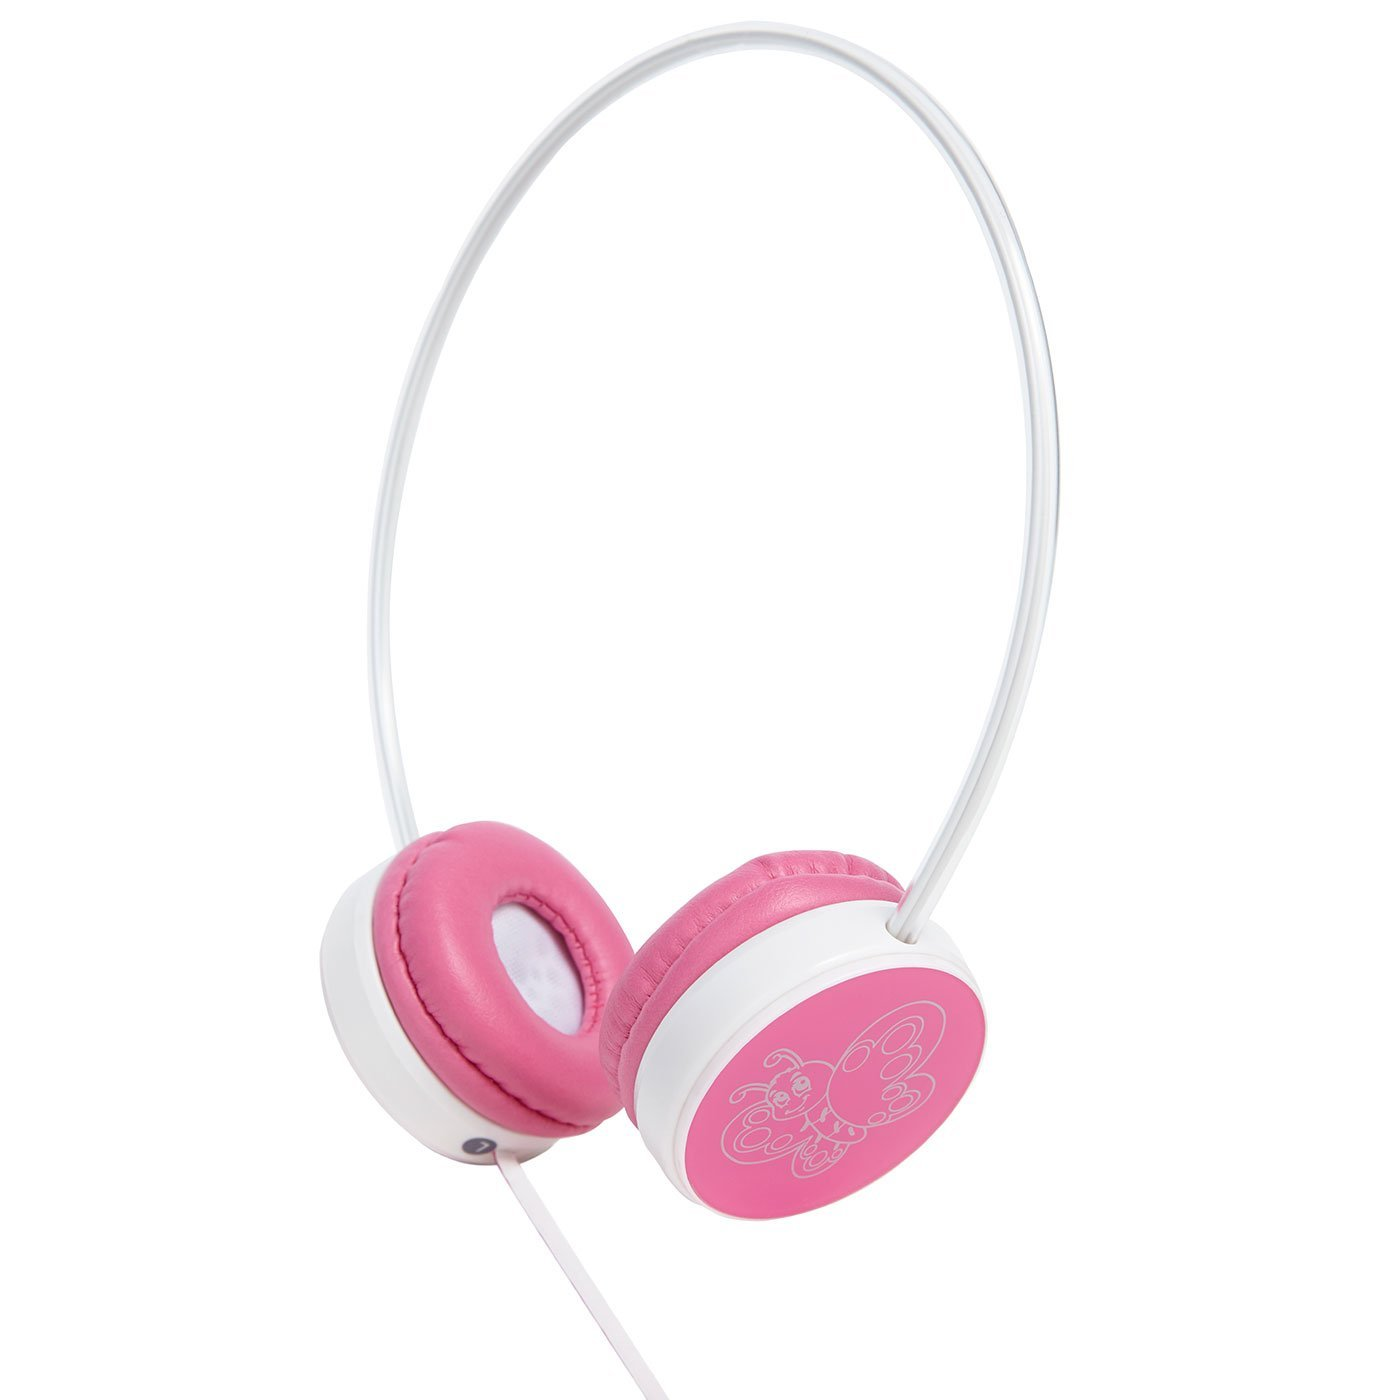 Groov-e Kids Children's Toy Playtime Noise Limited Fairy Pink Over Ear Earphones